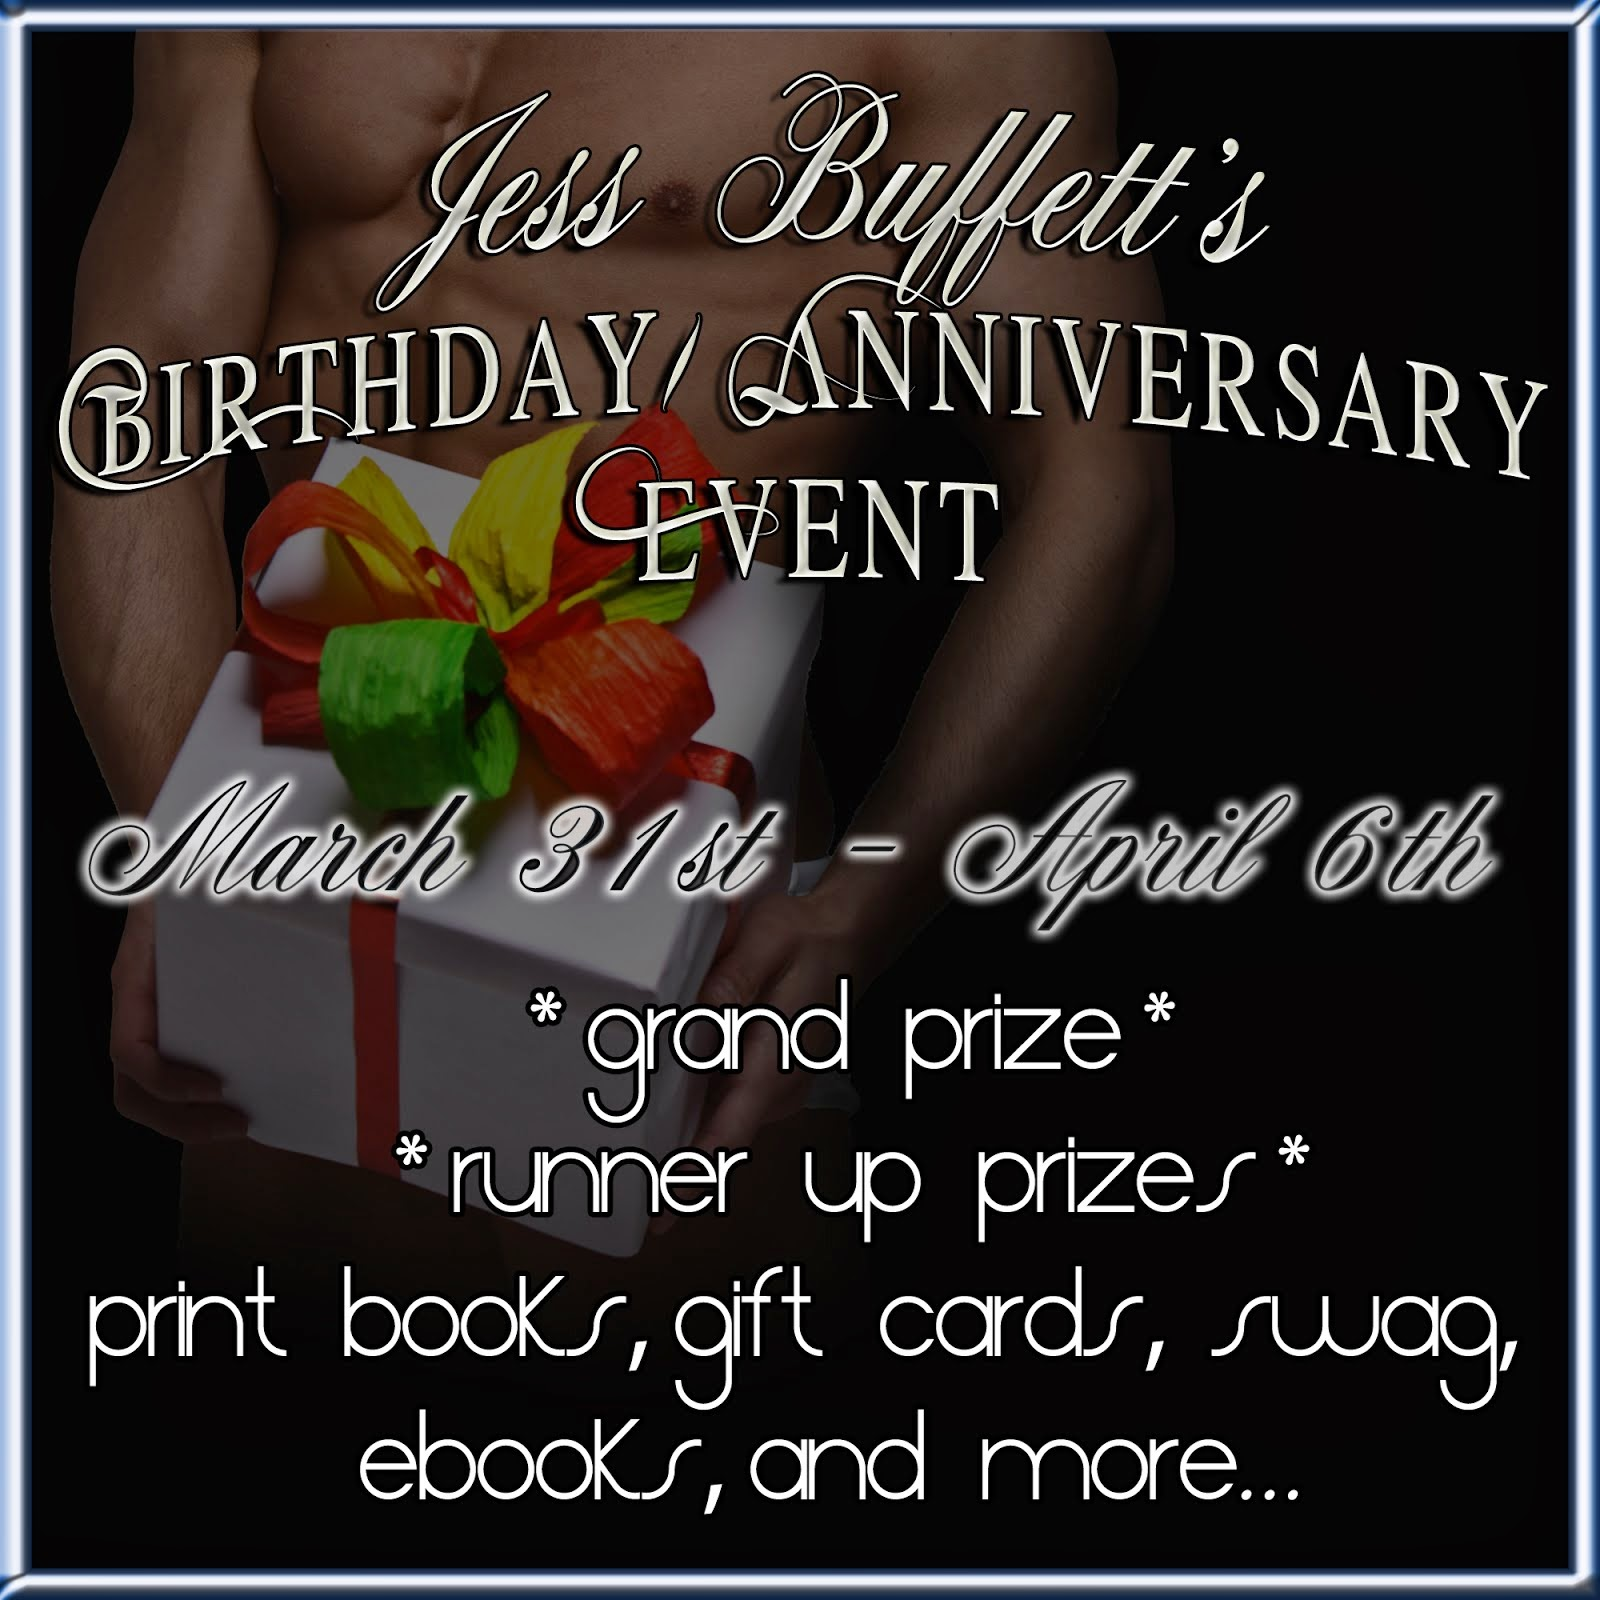 Jess Buffet birthday/anniversary GIVEAWAY